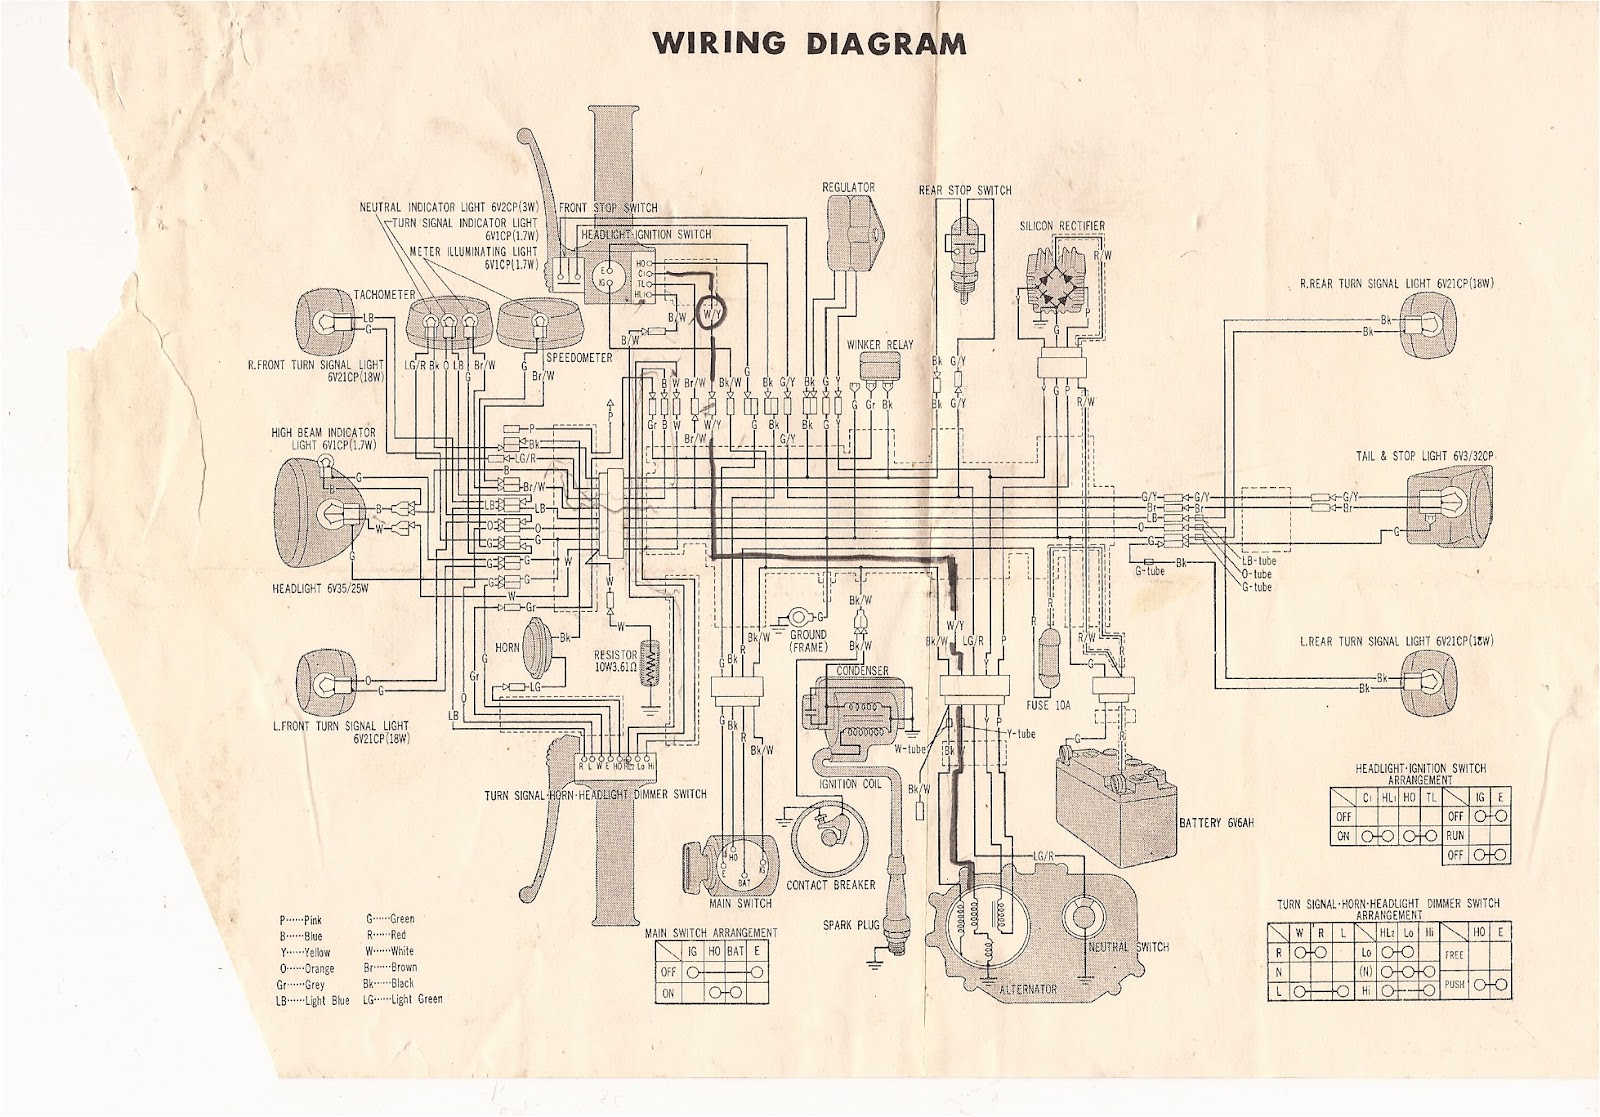 Honda Ascot Wiring Diagram Electrical Schematics Xr80 Ft500 Diagrams Design